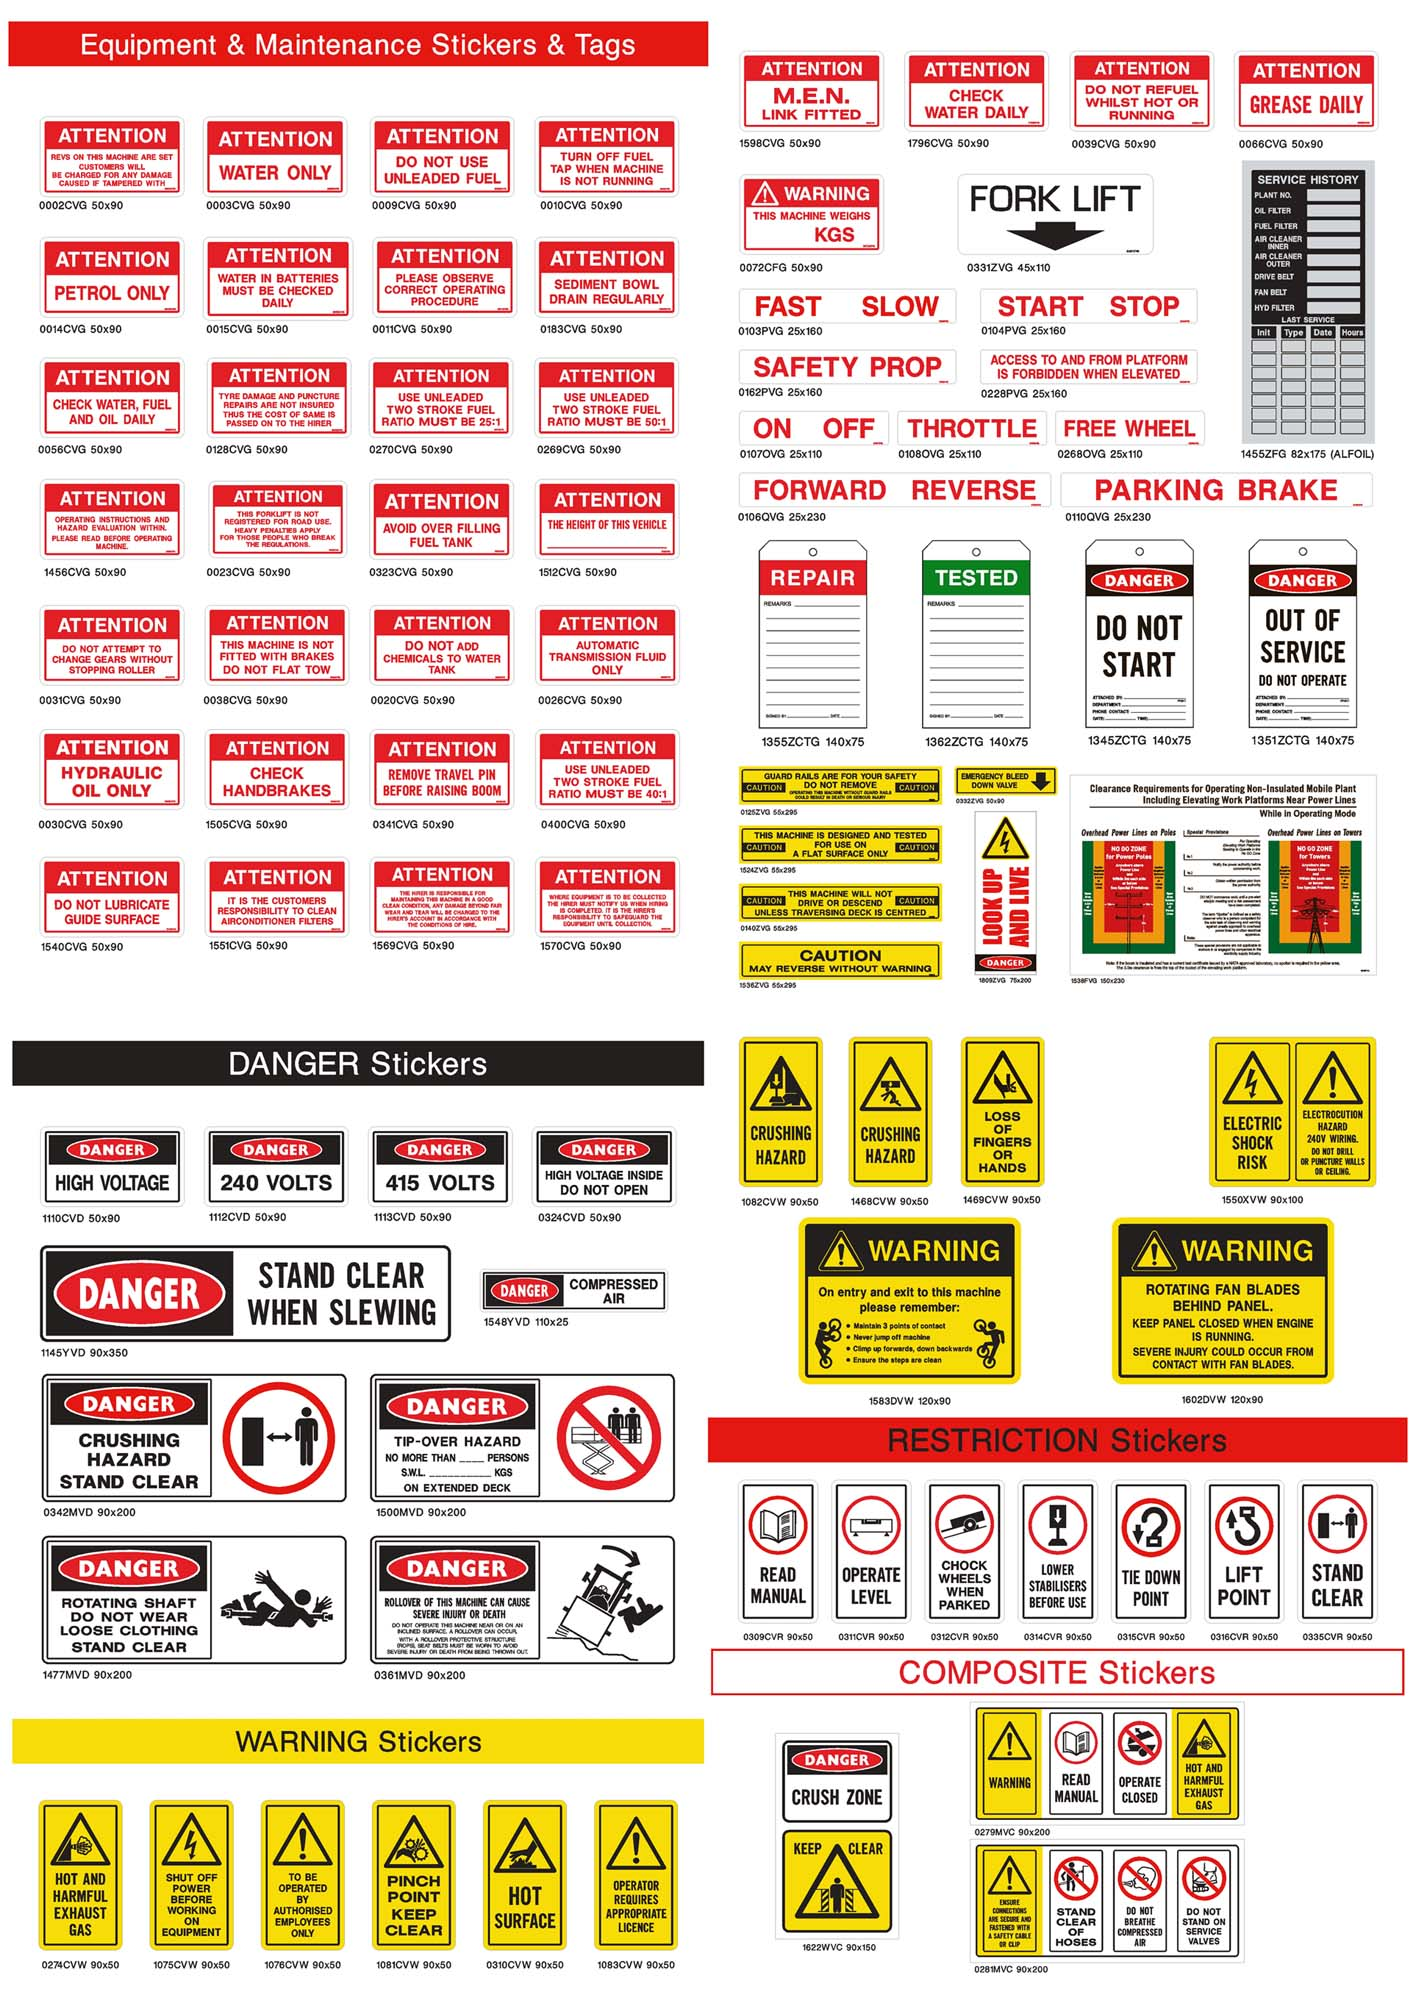 Equipment and Maintenance Stickers